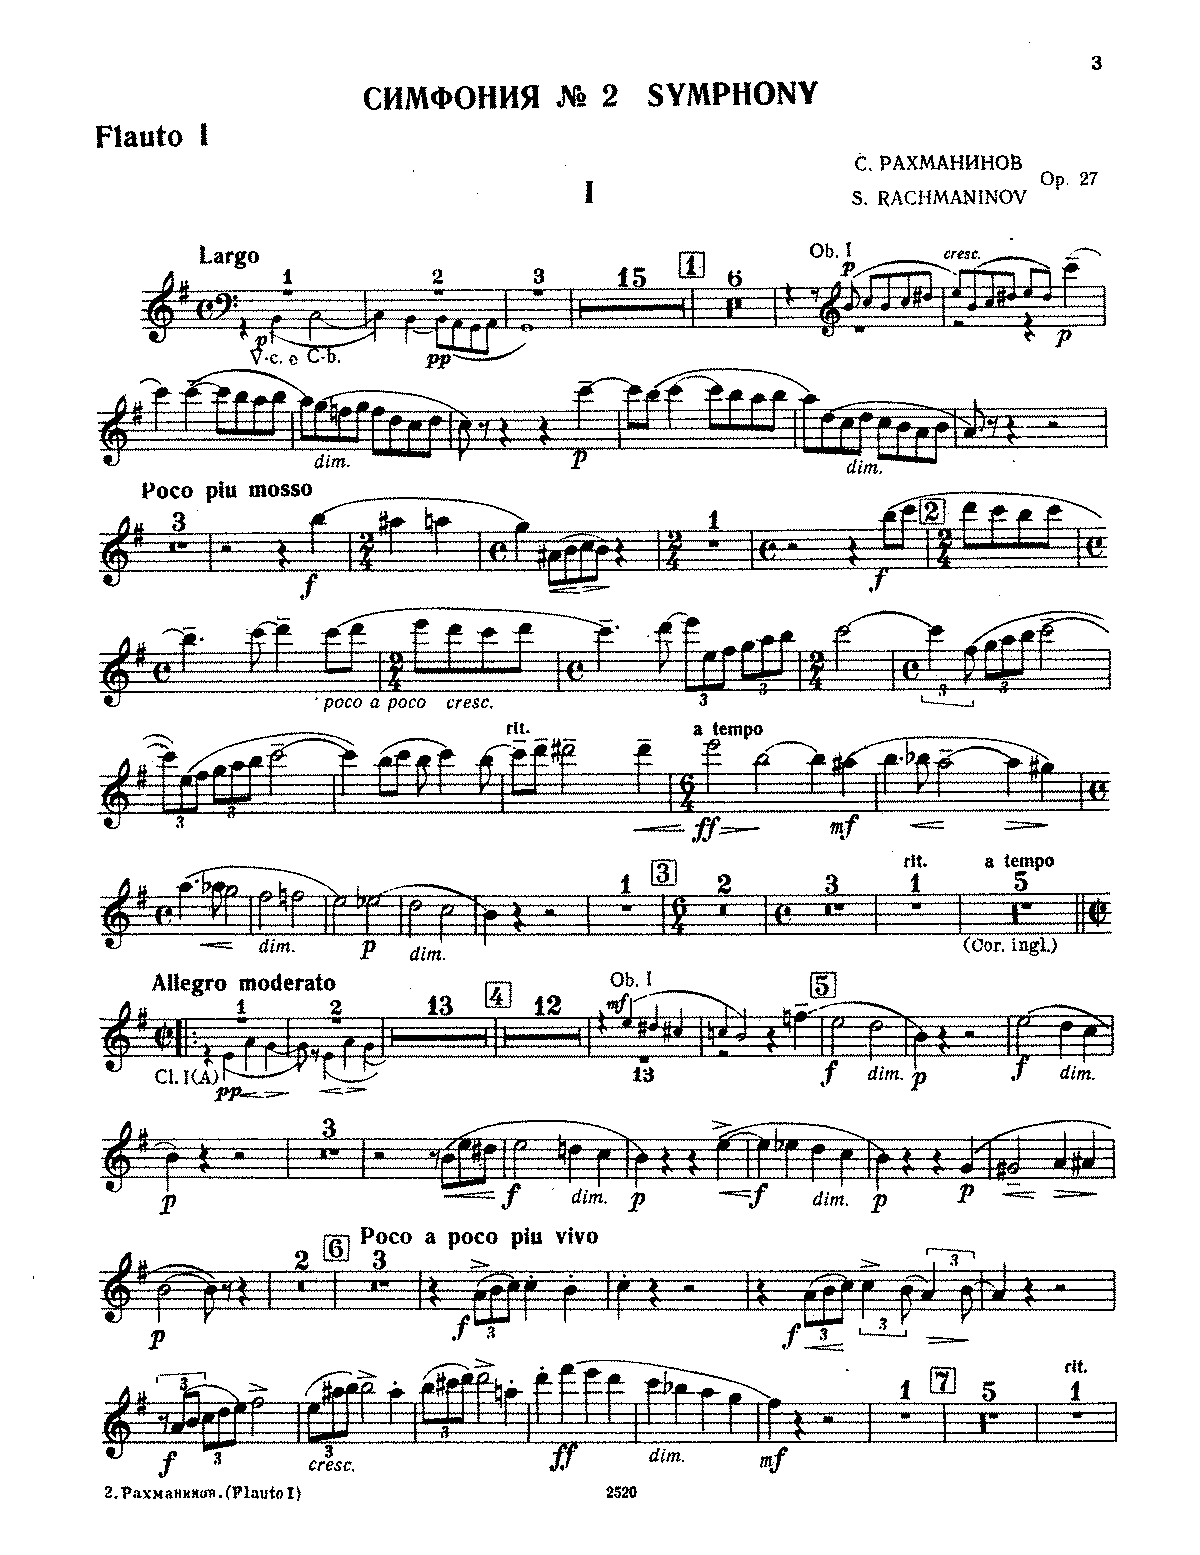 Rach symphony2 winds parts.pdf